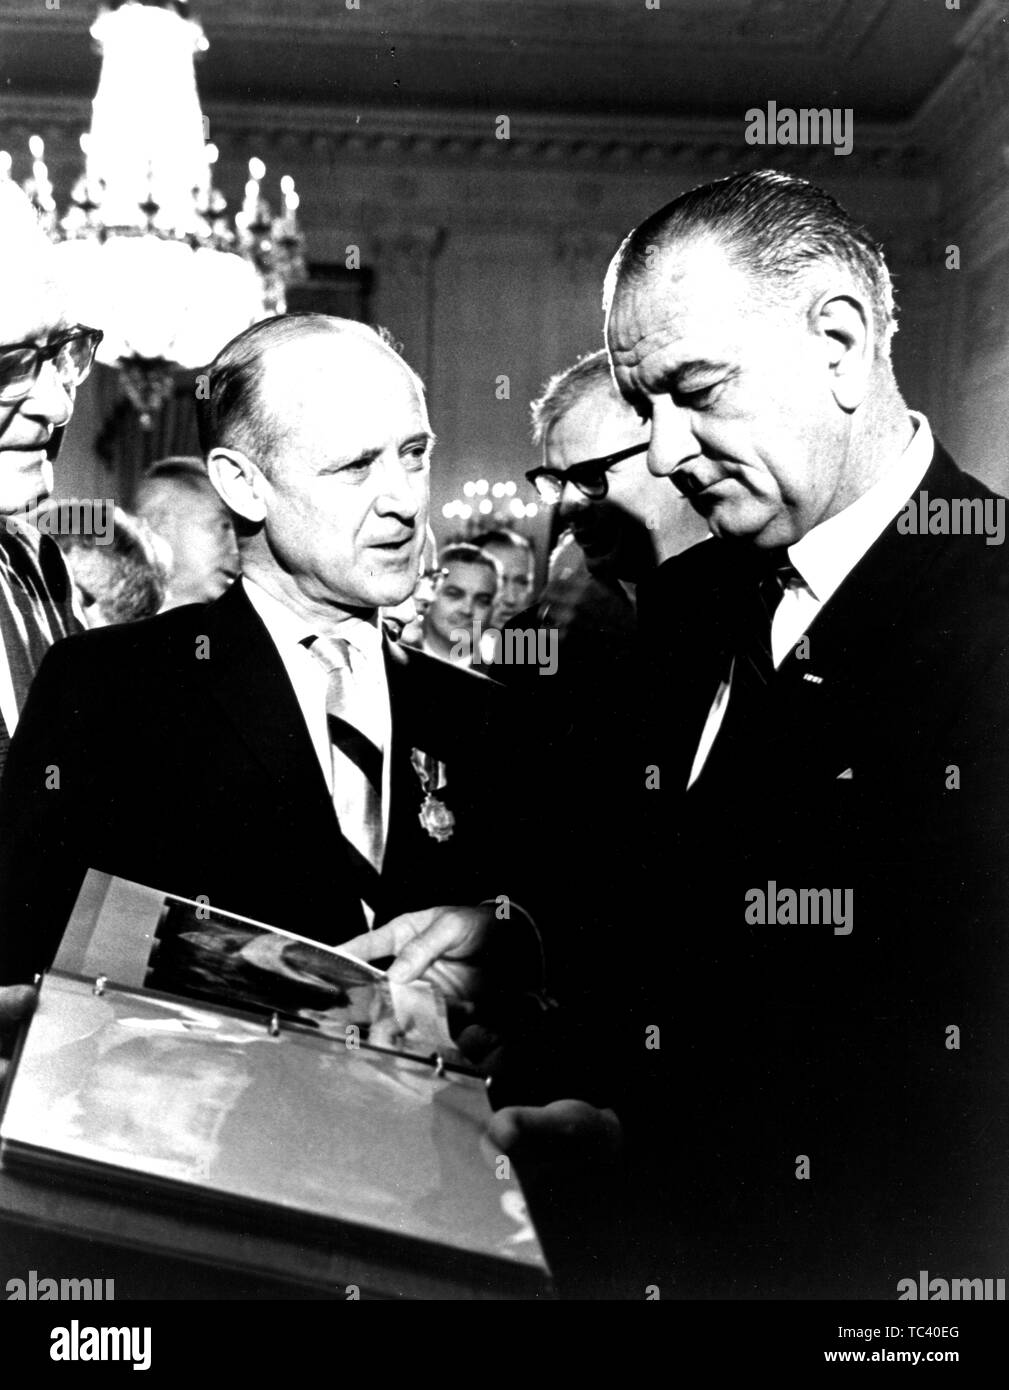 Director of the Jet Propulsion Laboratory Dr William H. Pickering presenting Mariner spacecraft photos to President Lyndon Baines Johnson, July 29, 1965. Image courtesy National Aeronautics and Space Administration (NASA). () - Stock Image